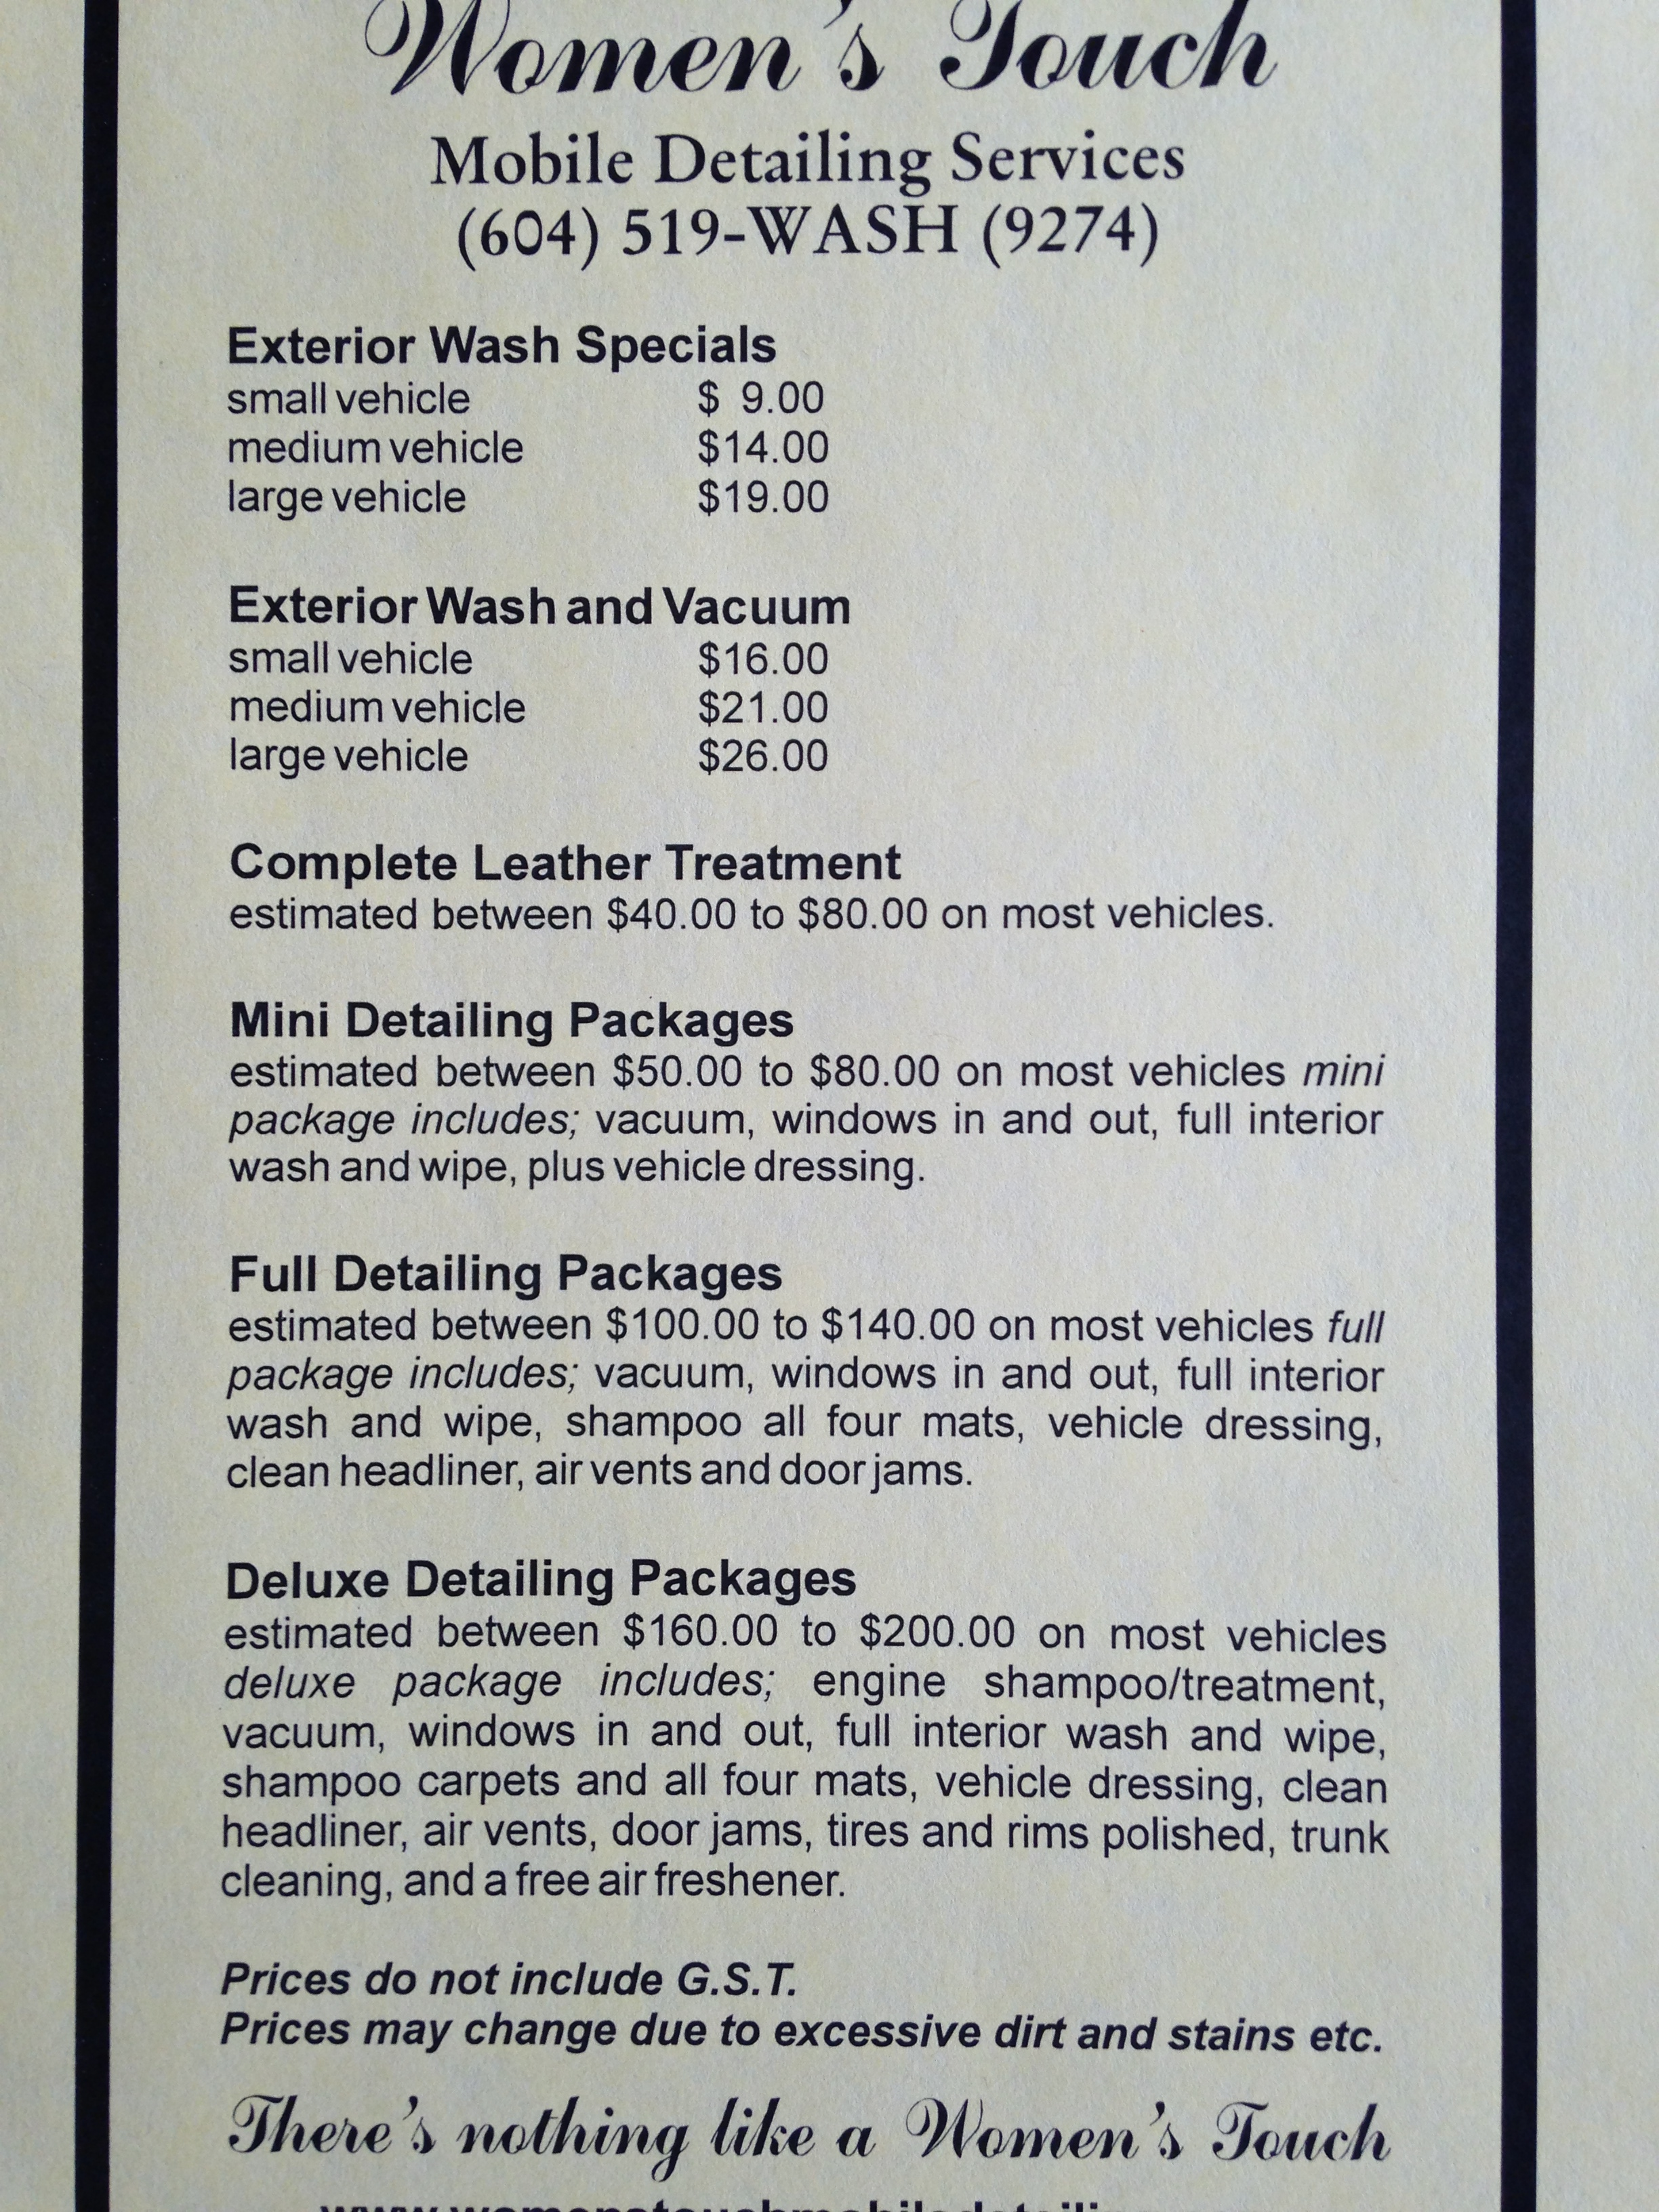 Women's Touch Mobile Detailing Services